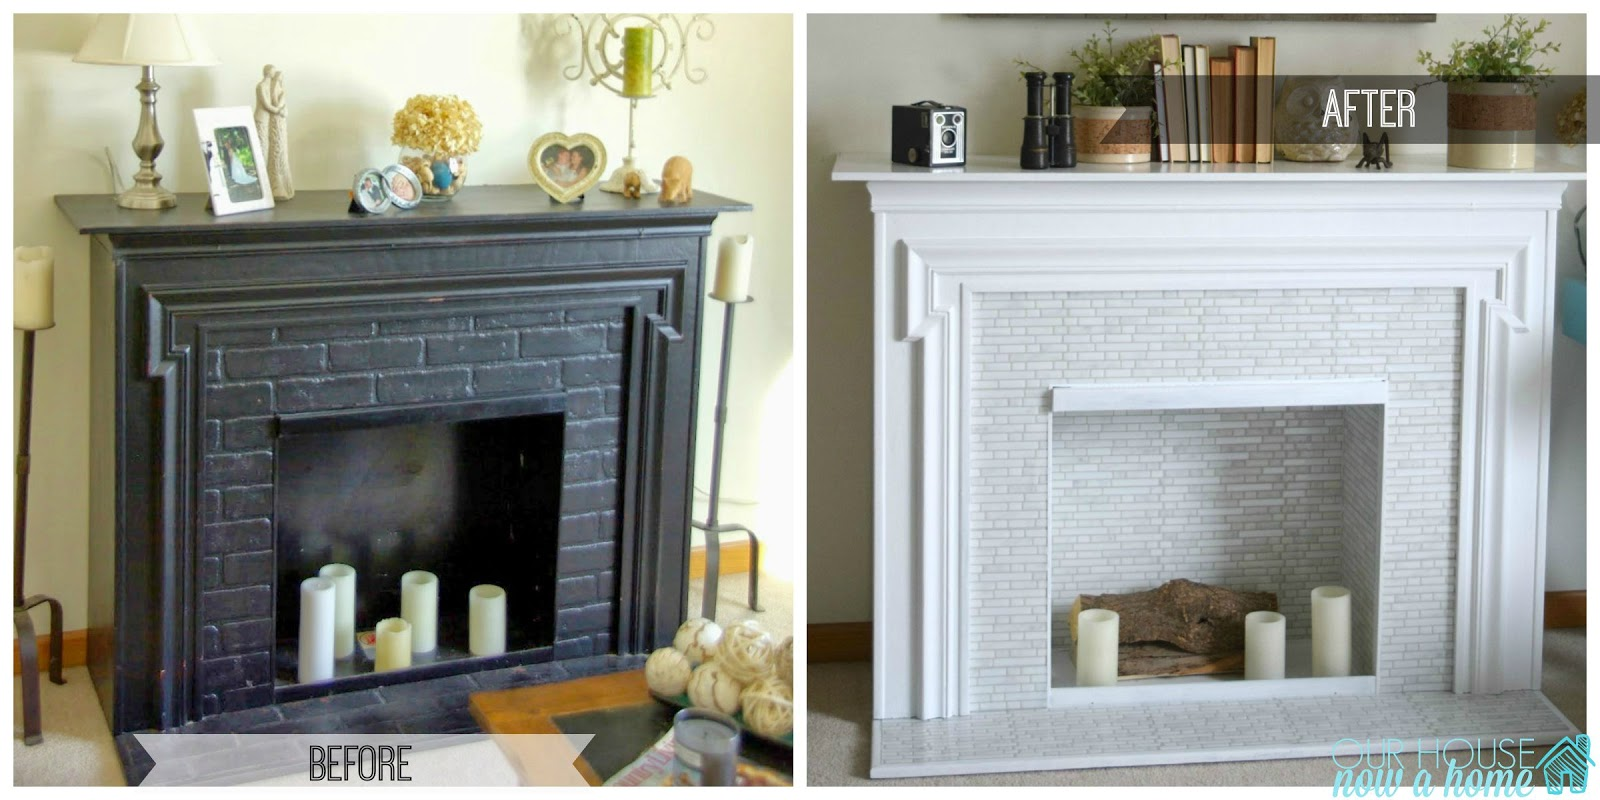 30 day flip secondhand fireplace redo our house now a home. Black Bedroom Furniture Sets. Home Design Ideas